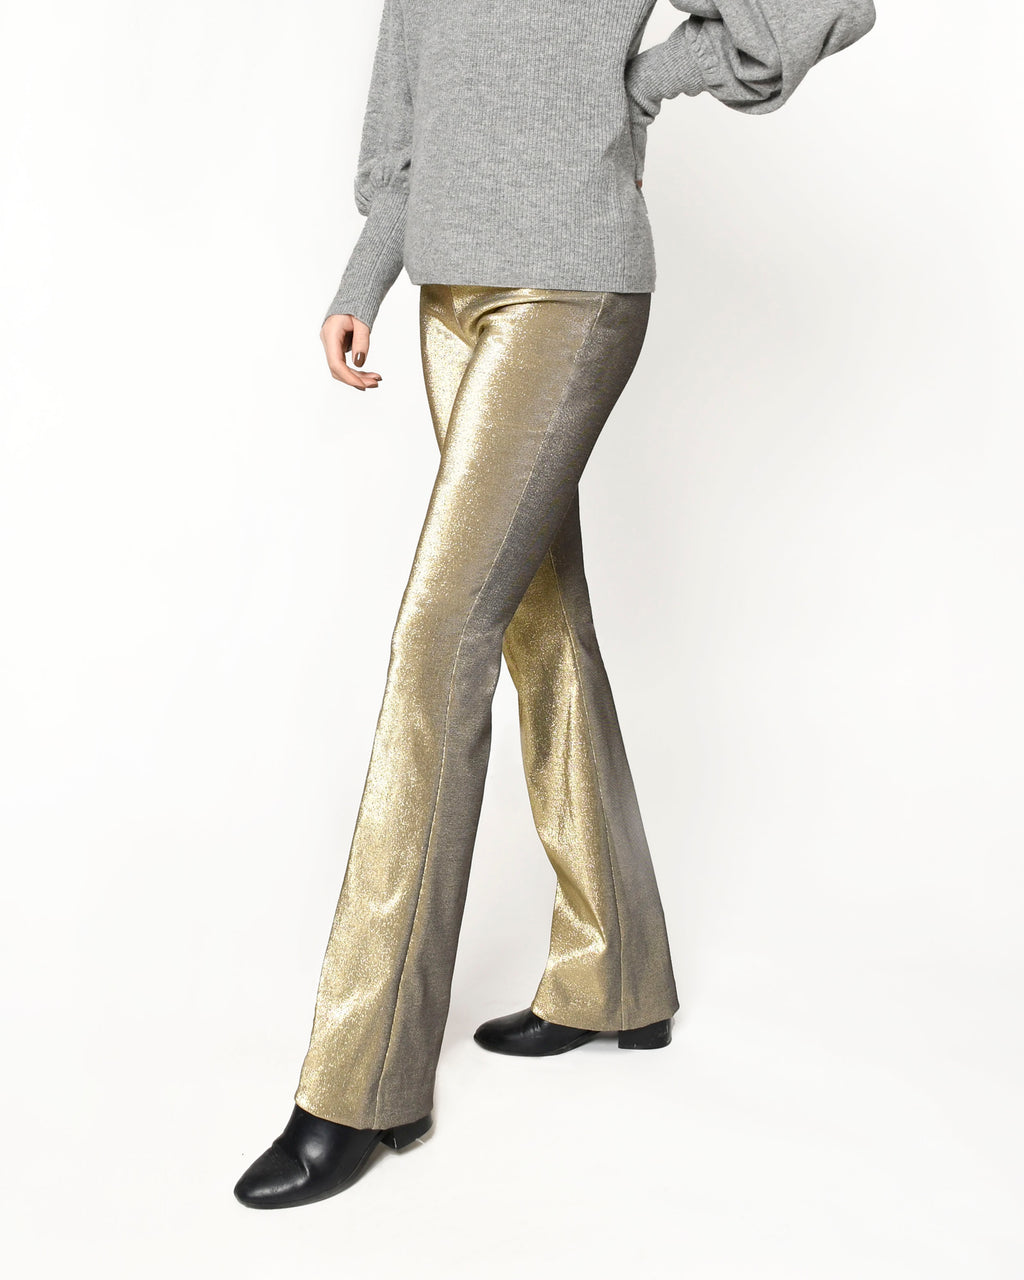 CP18466 - SPARKLE PULL ON PANTS - bottoms - pants - THE ULTIMATE PARTY PANTS. THESE STRAIGHT LEG PANTS ARE DUSTED IN A GOLD SPARKLE THAT DOESN'T FLAKE OFF AND HAVE AN ULTRA SOFT LINING. THE HIGH WAISTBAND FITS AND FLATTERS YOUR CURVES. Add 1 line break STYLIST TIP: PAIR WITH A BLACK CAMI TOP AND HEELS.